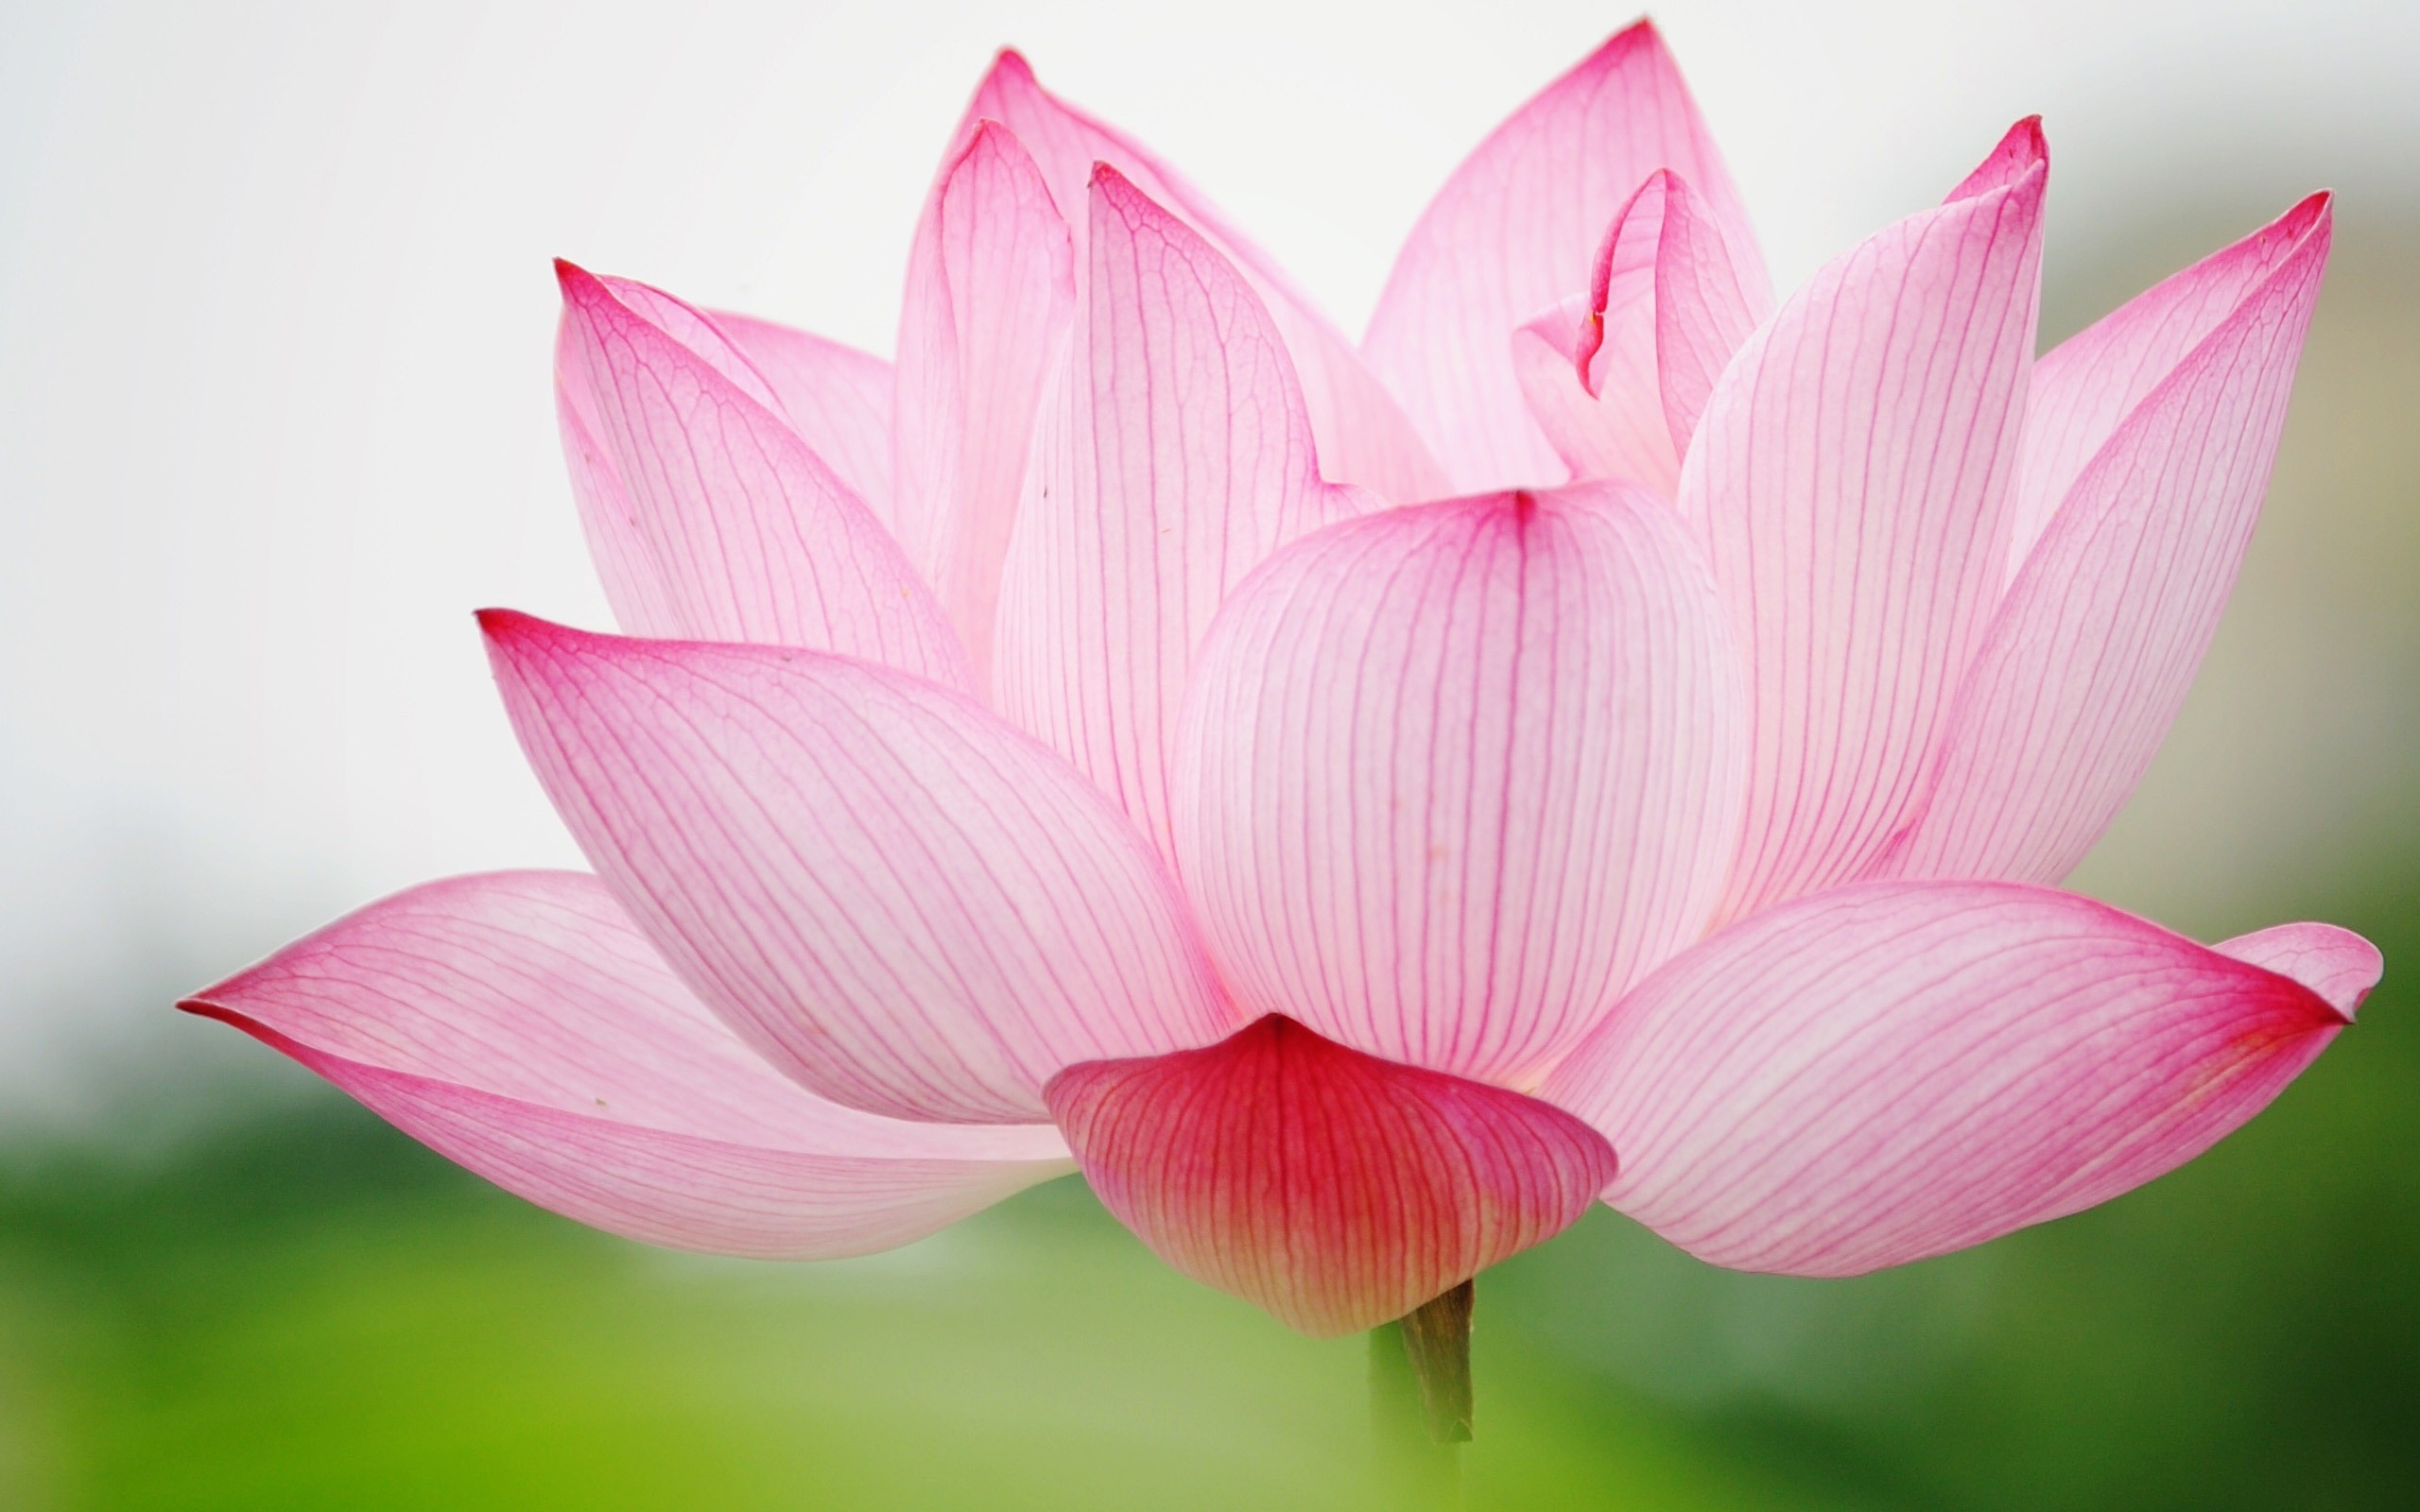 Images of flowers with pink lotus flower for beautiful nature attachment picture for high definition desktop wallpapers with pink lotus flower dhlflorist Images